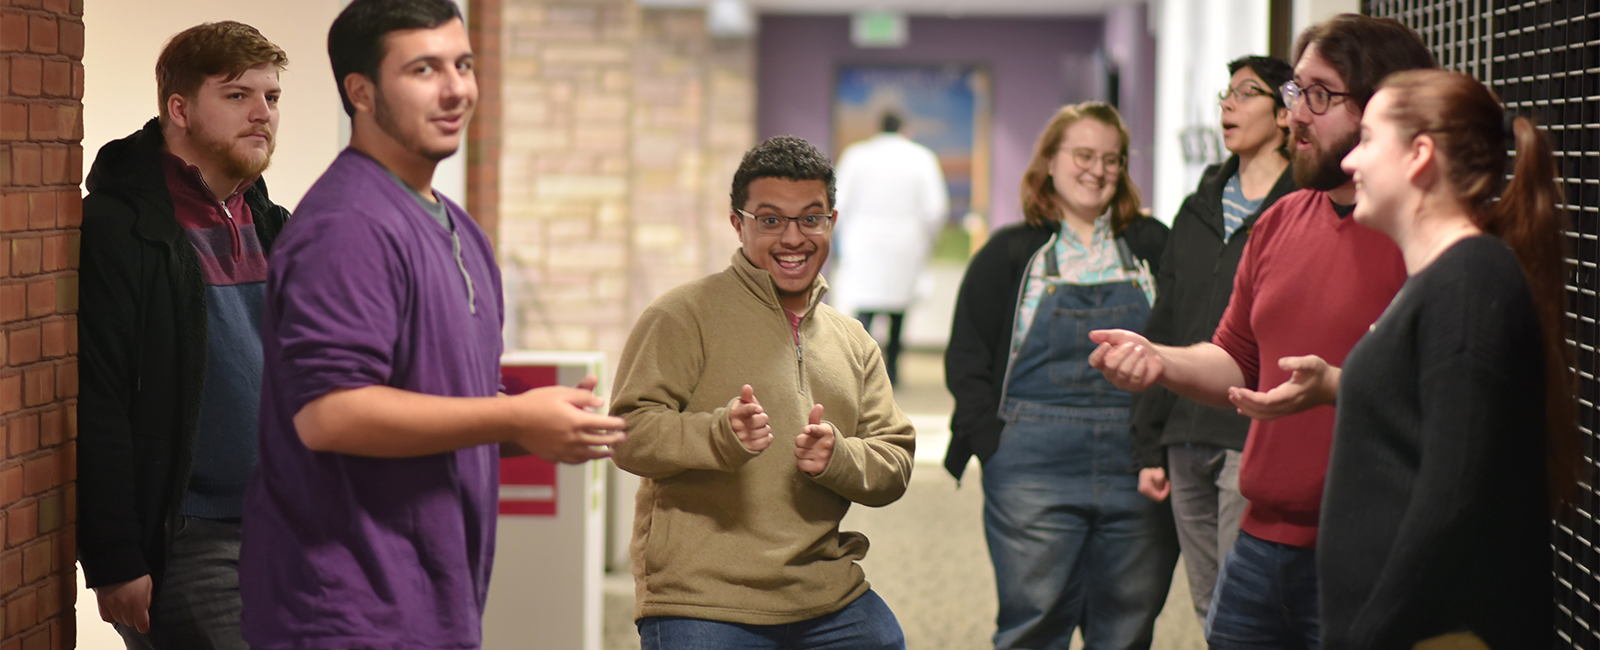 Smiling students in a hallway